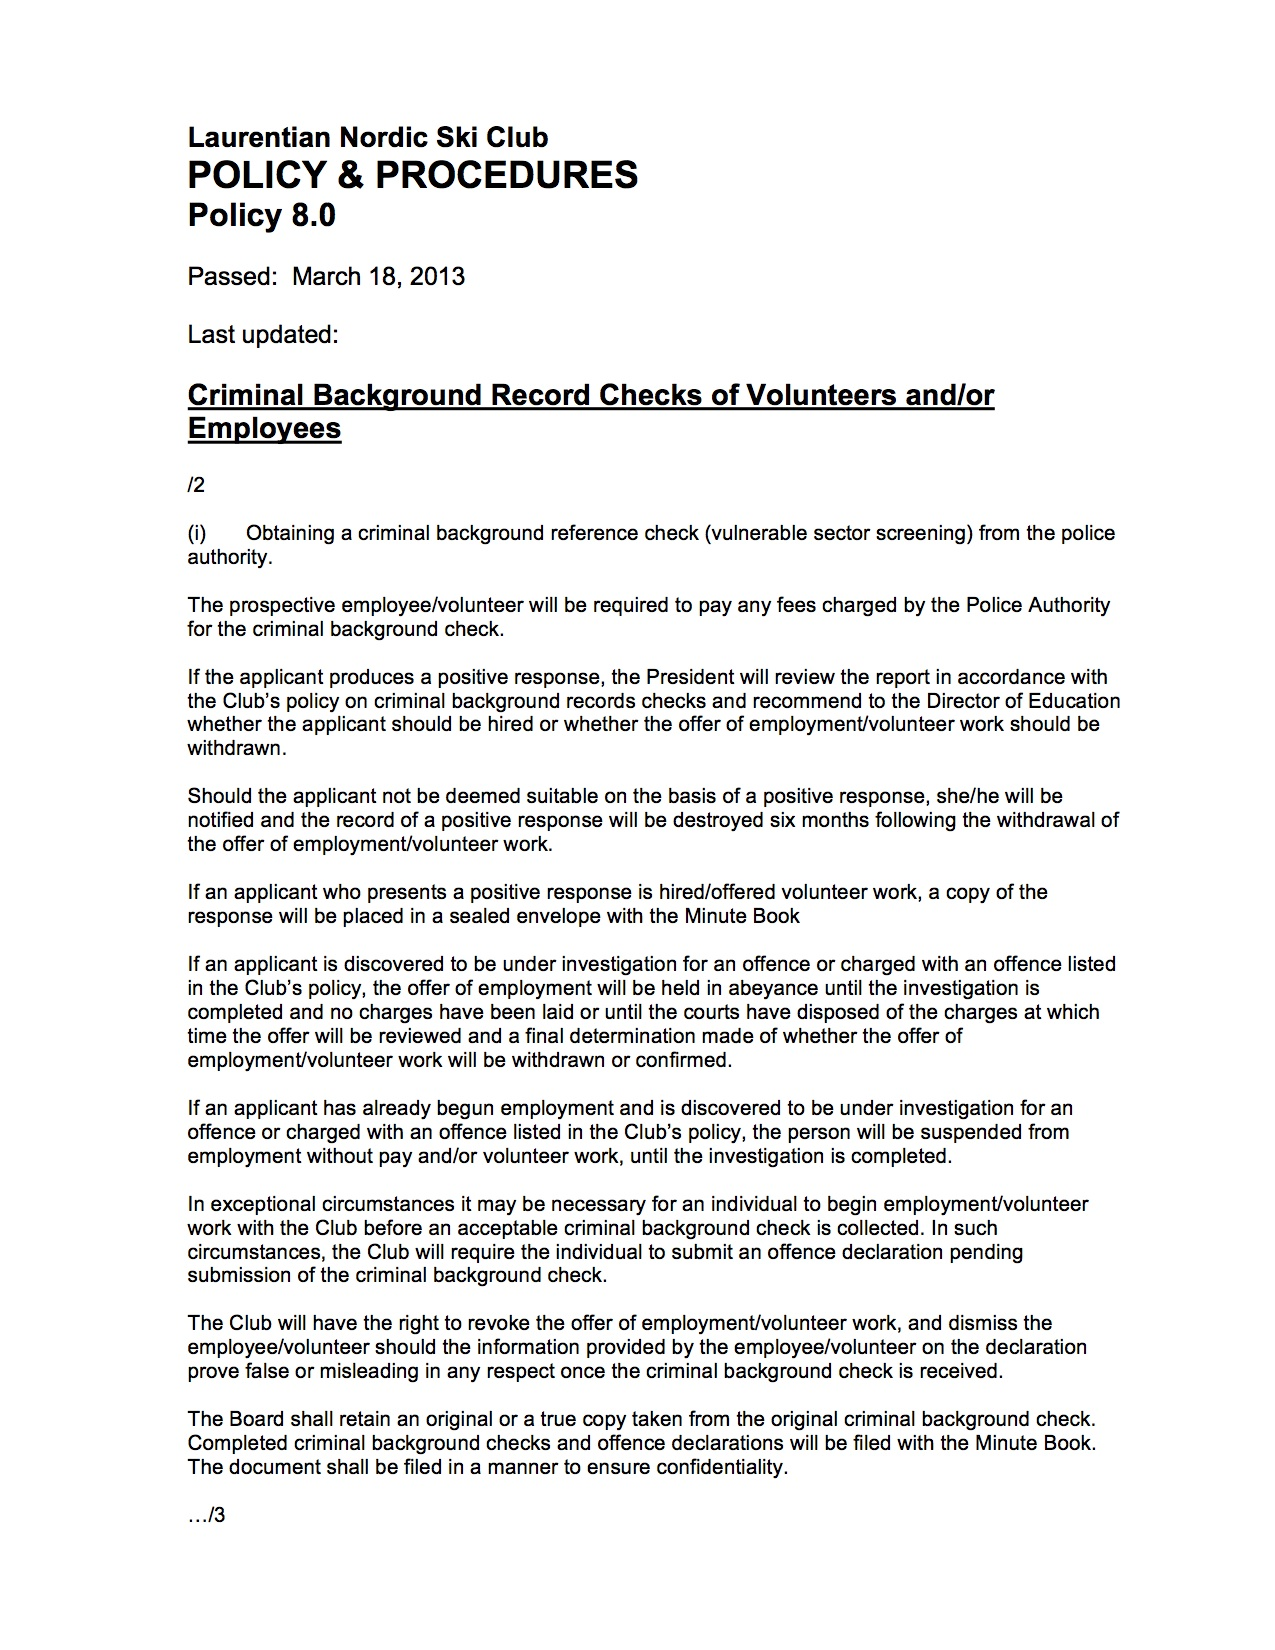 08 0 B Policy Criminal Background Record Checks | Laurentian